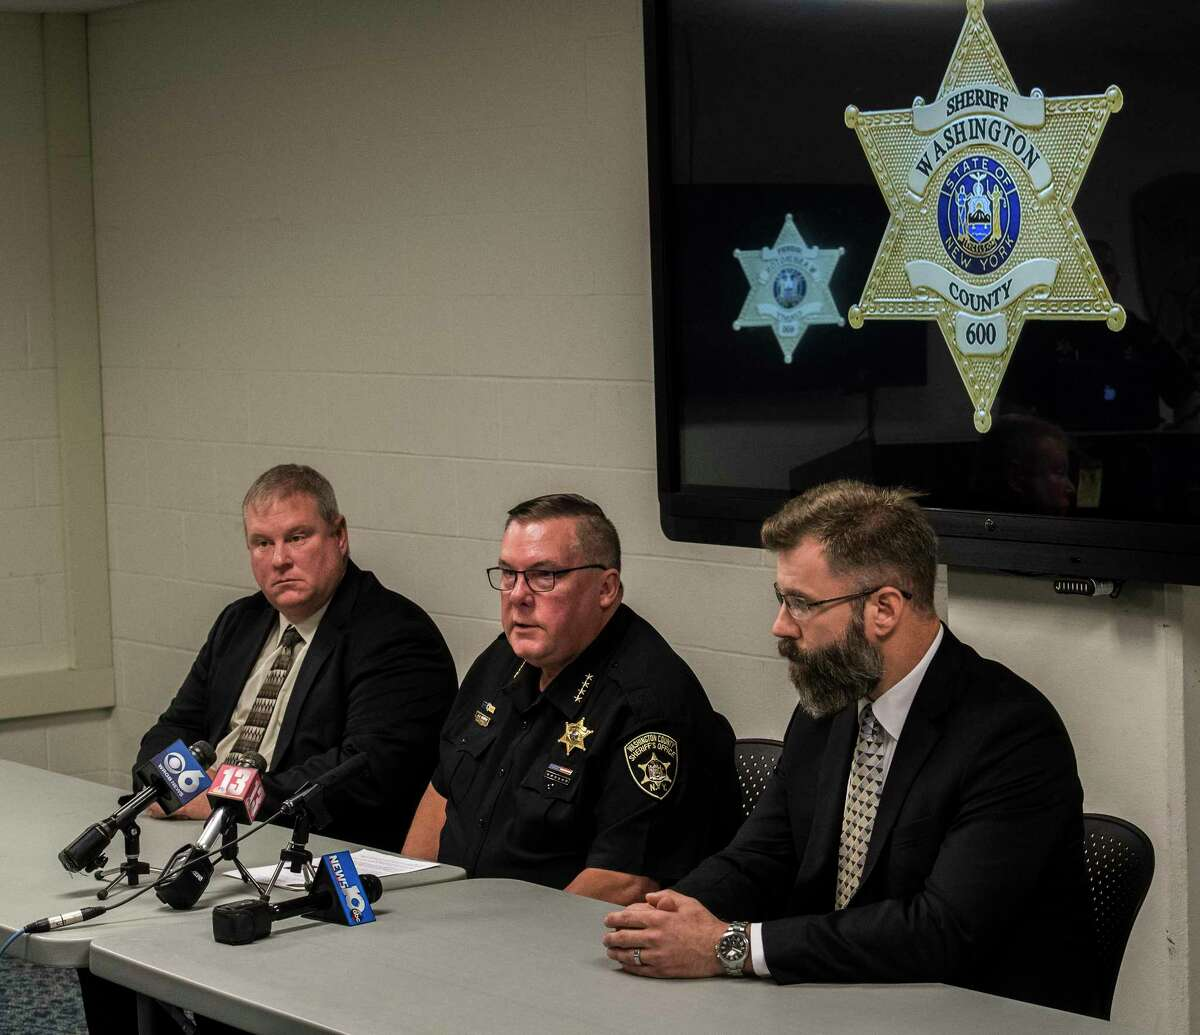 Washington County Court Sheriff Jeff Murphy, middle, speaks during a press briefing regarding the disappearance of Malaya Johnson, 12 of Hudson Falls Friday Sept.28, 2018 in Fort Edward, N.Y. Joining Sheriff Murphy is Chief Scott Gillis of Hudson Falls, left and 1st Assistant DA Christian Morris, right. (Skip Dickstein/Times Union)